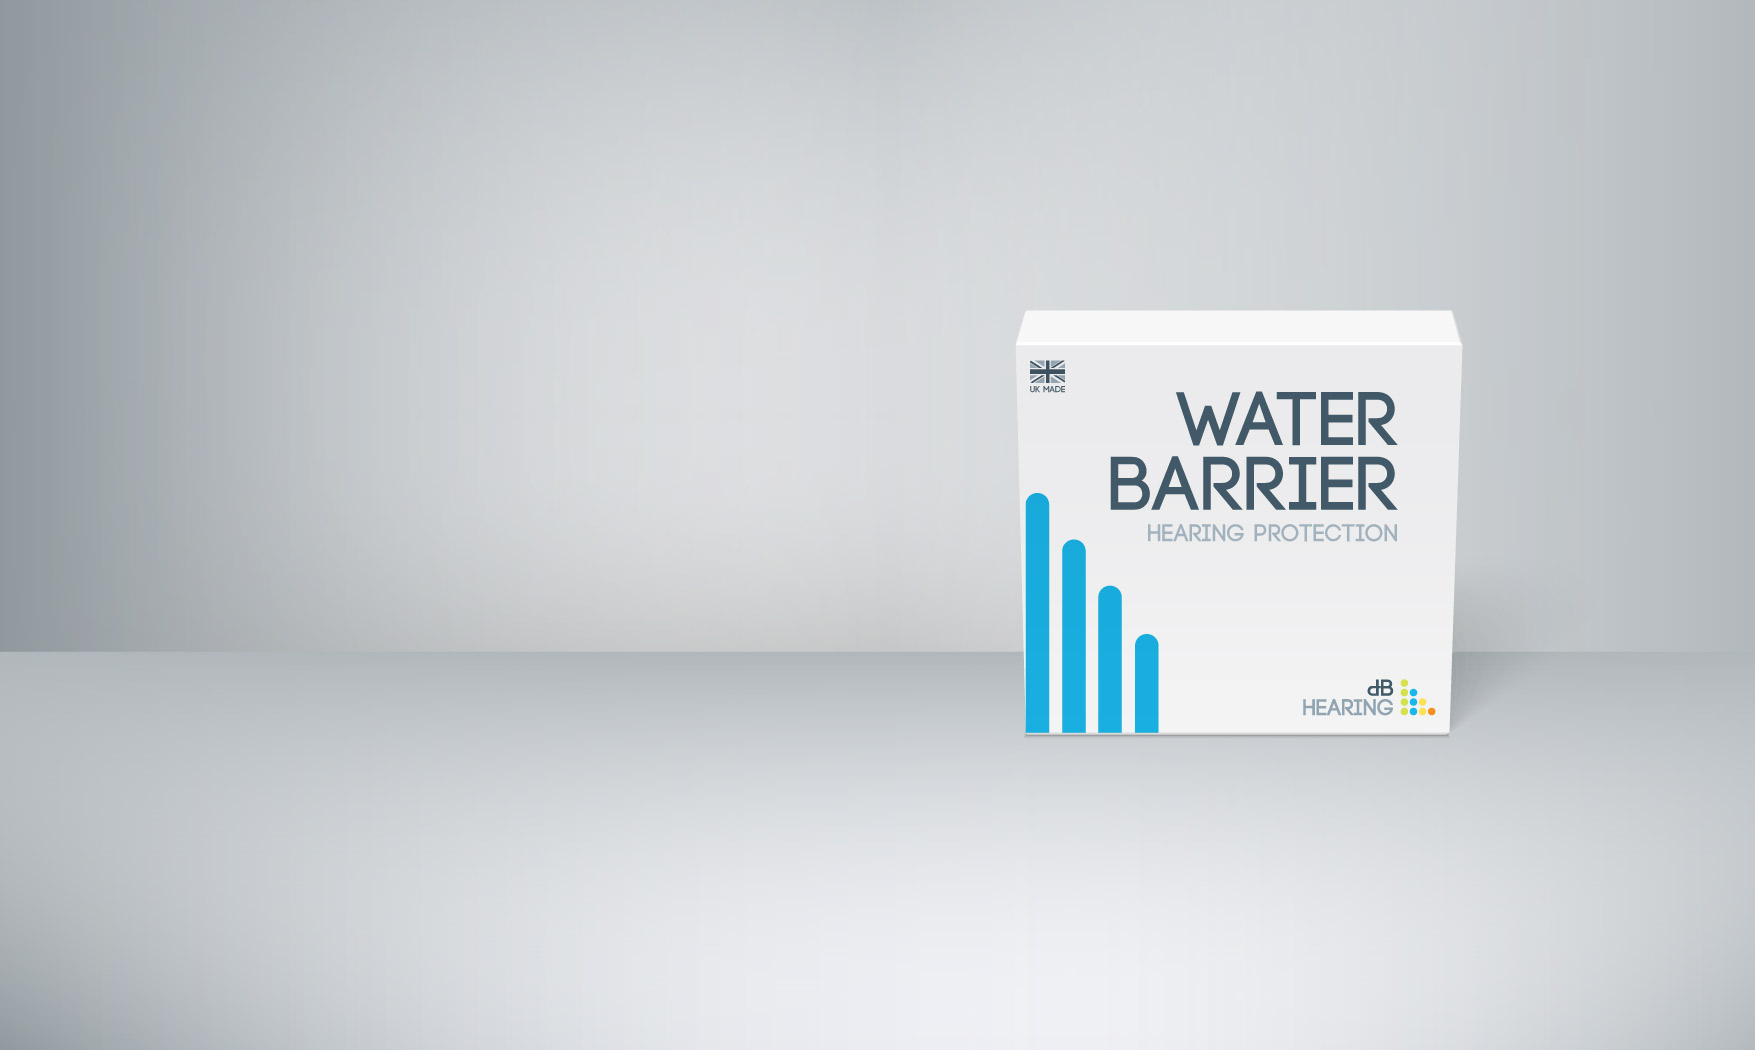 WATER-BARRIER